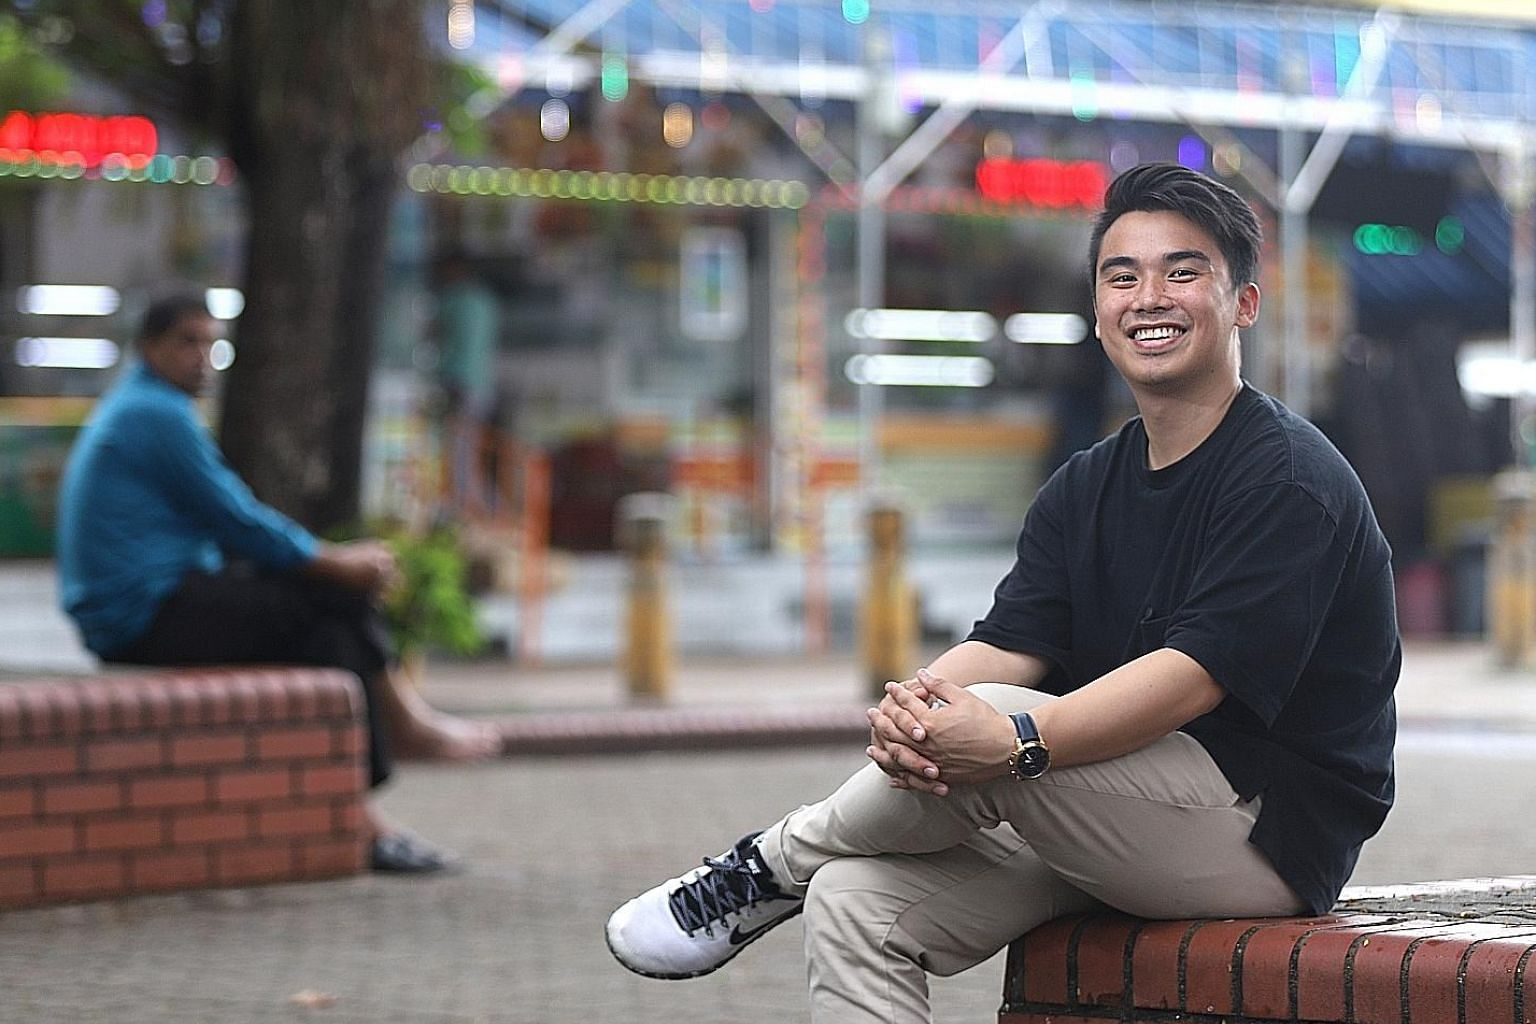 Migrant x Me business developer Seah Cheng, 26, said his former impressions of migrant workers were shaped by negative stereotypes and anecdotes shared by friends and family.